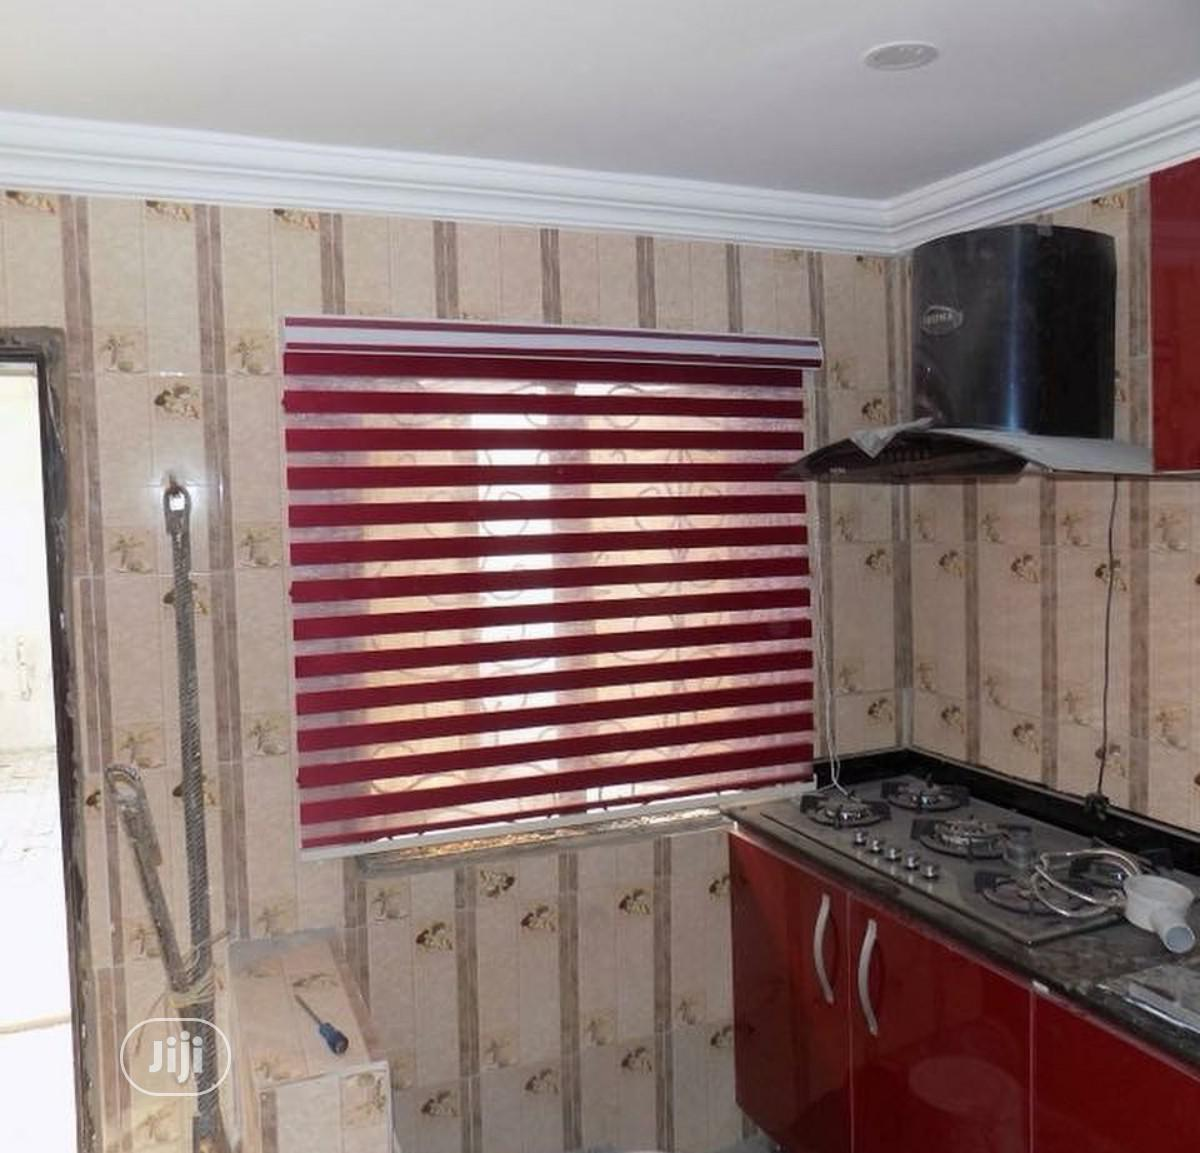 Trendy Window Blinds At Fracan Interior Ltd Abuja. Free Installation